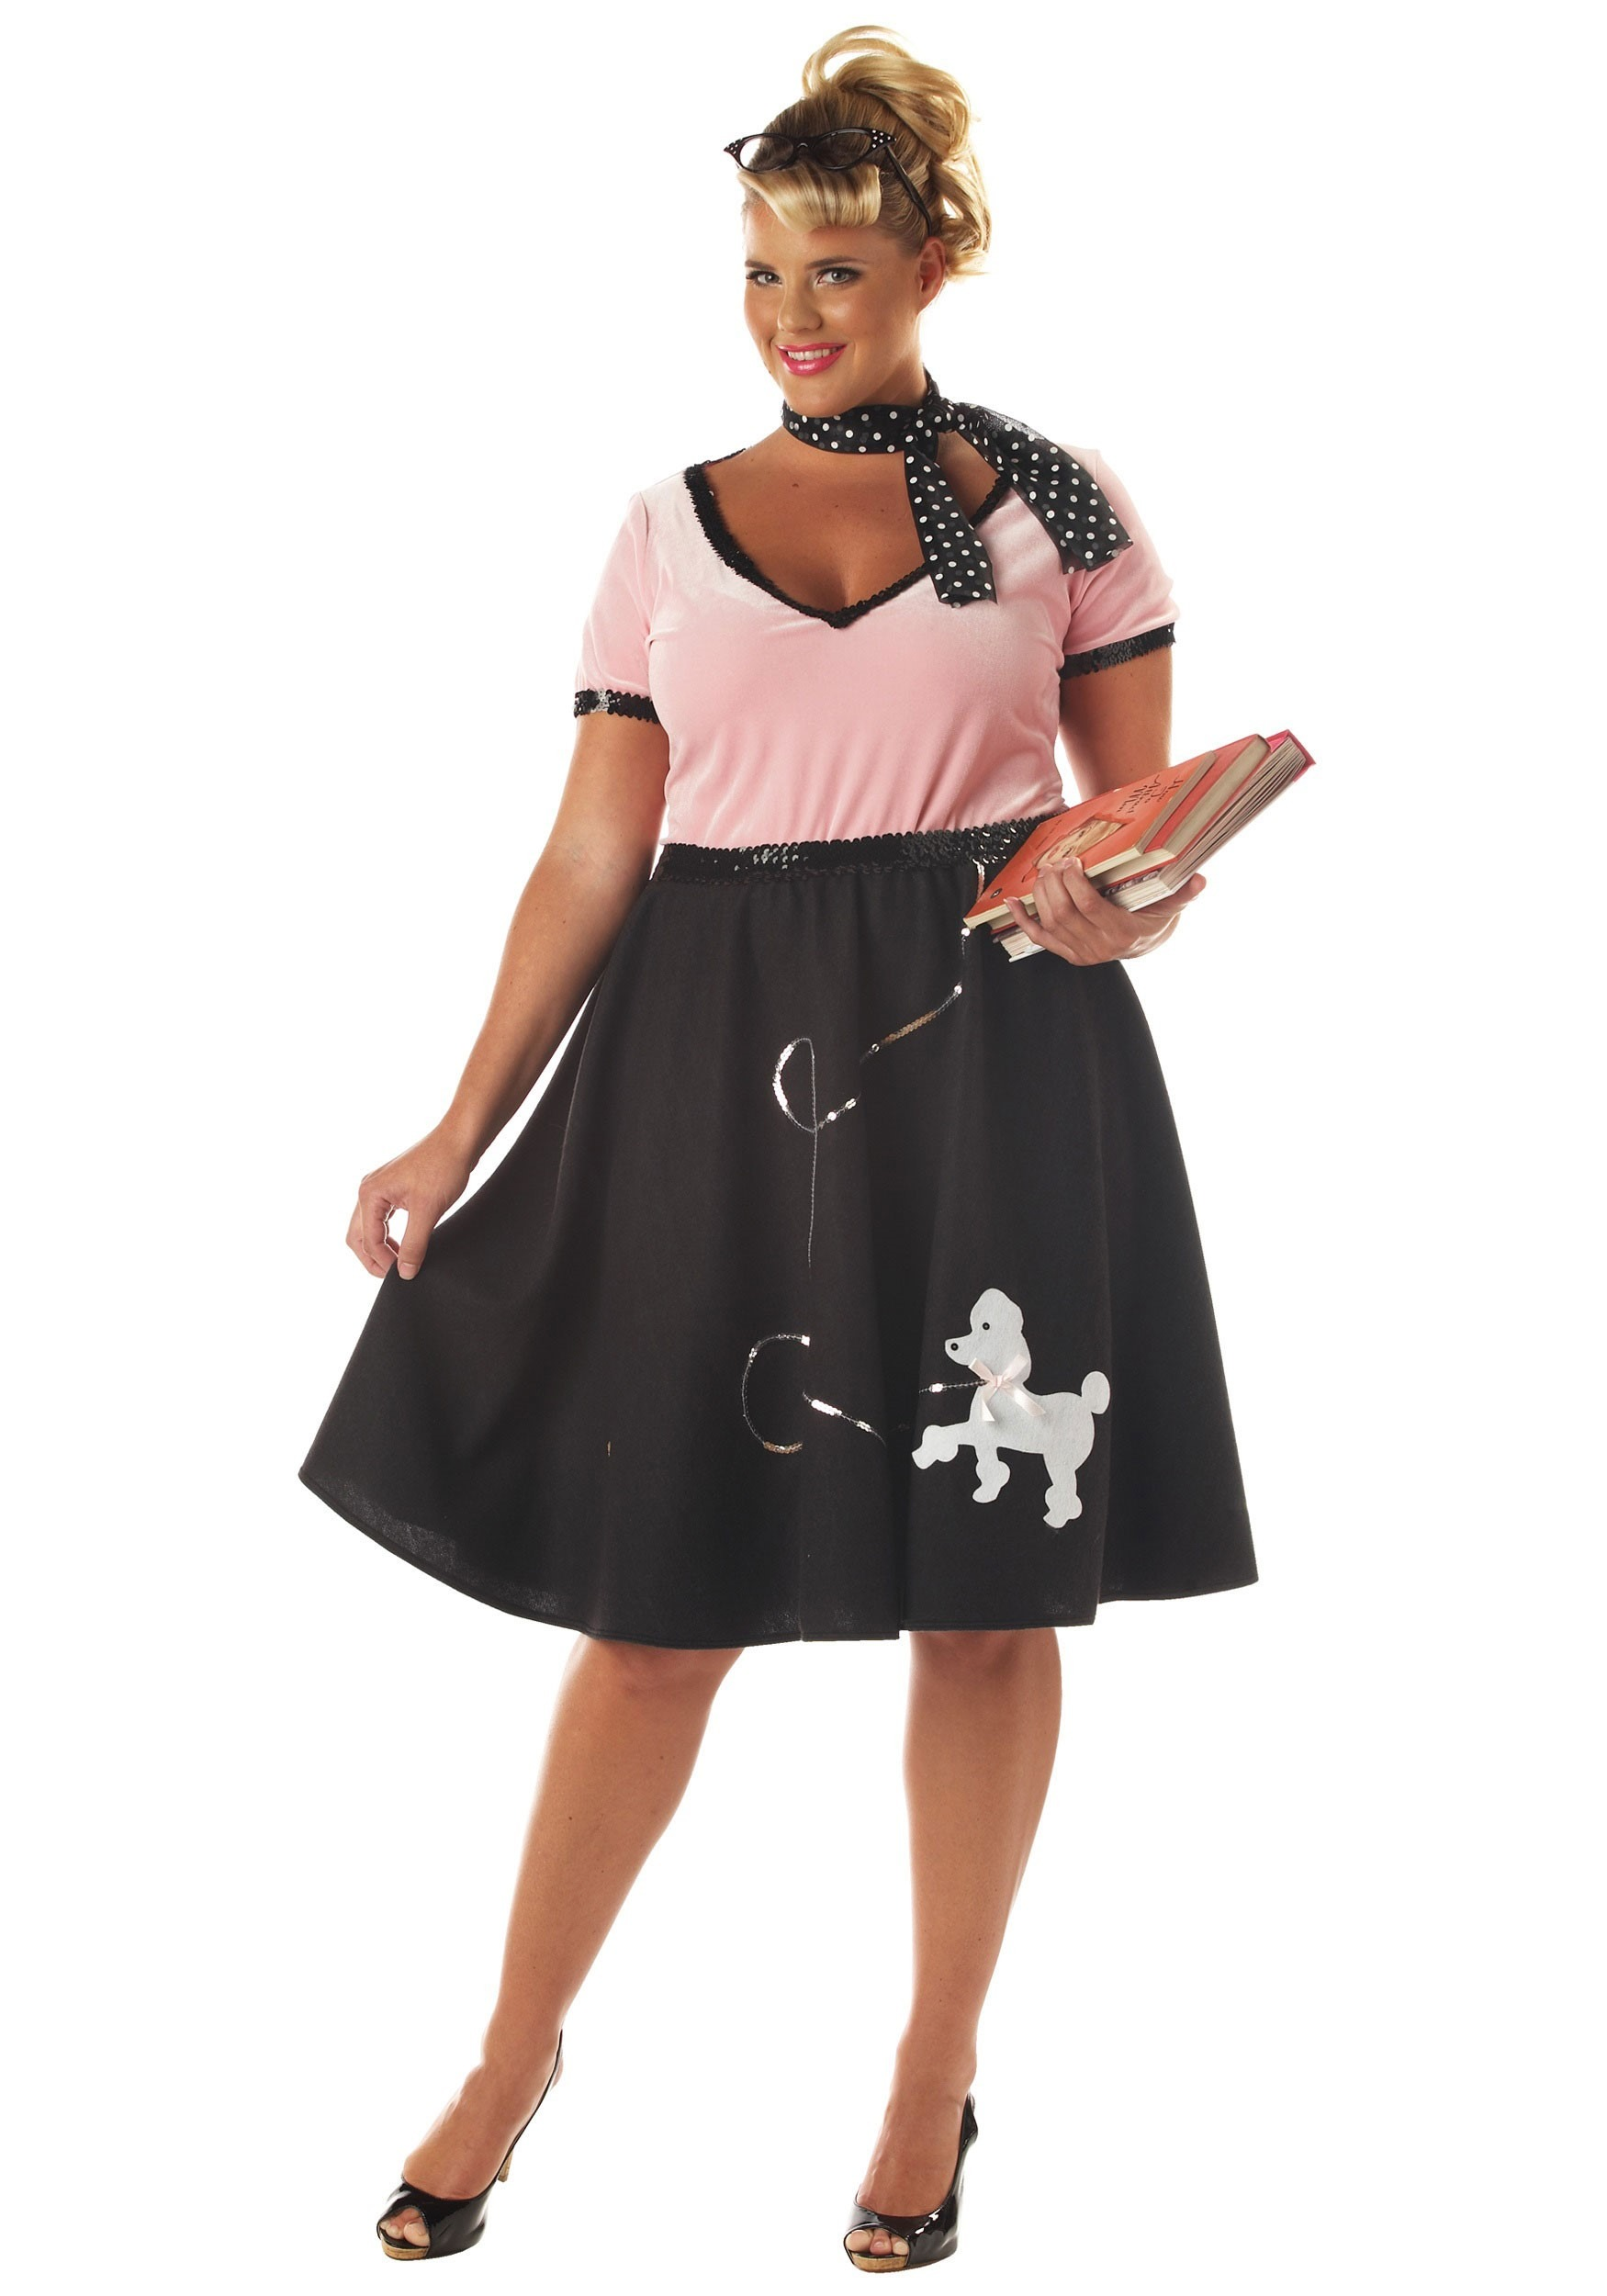 50s Sweetheart Plus Size Costume for Women